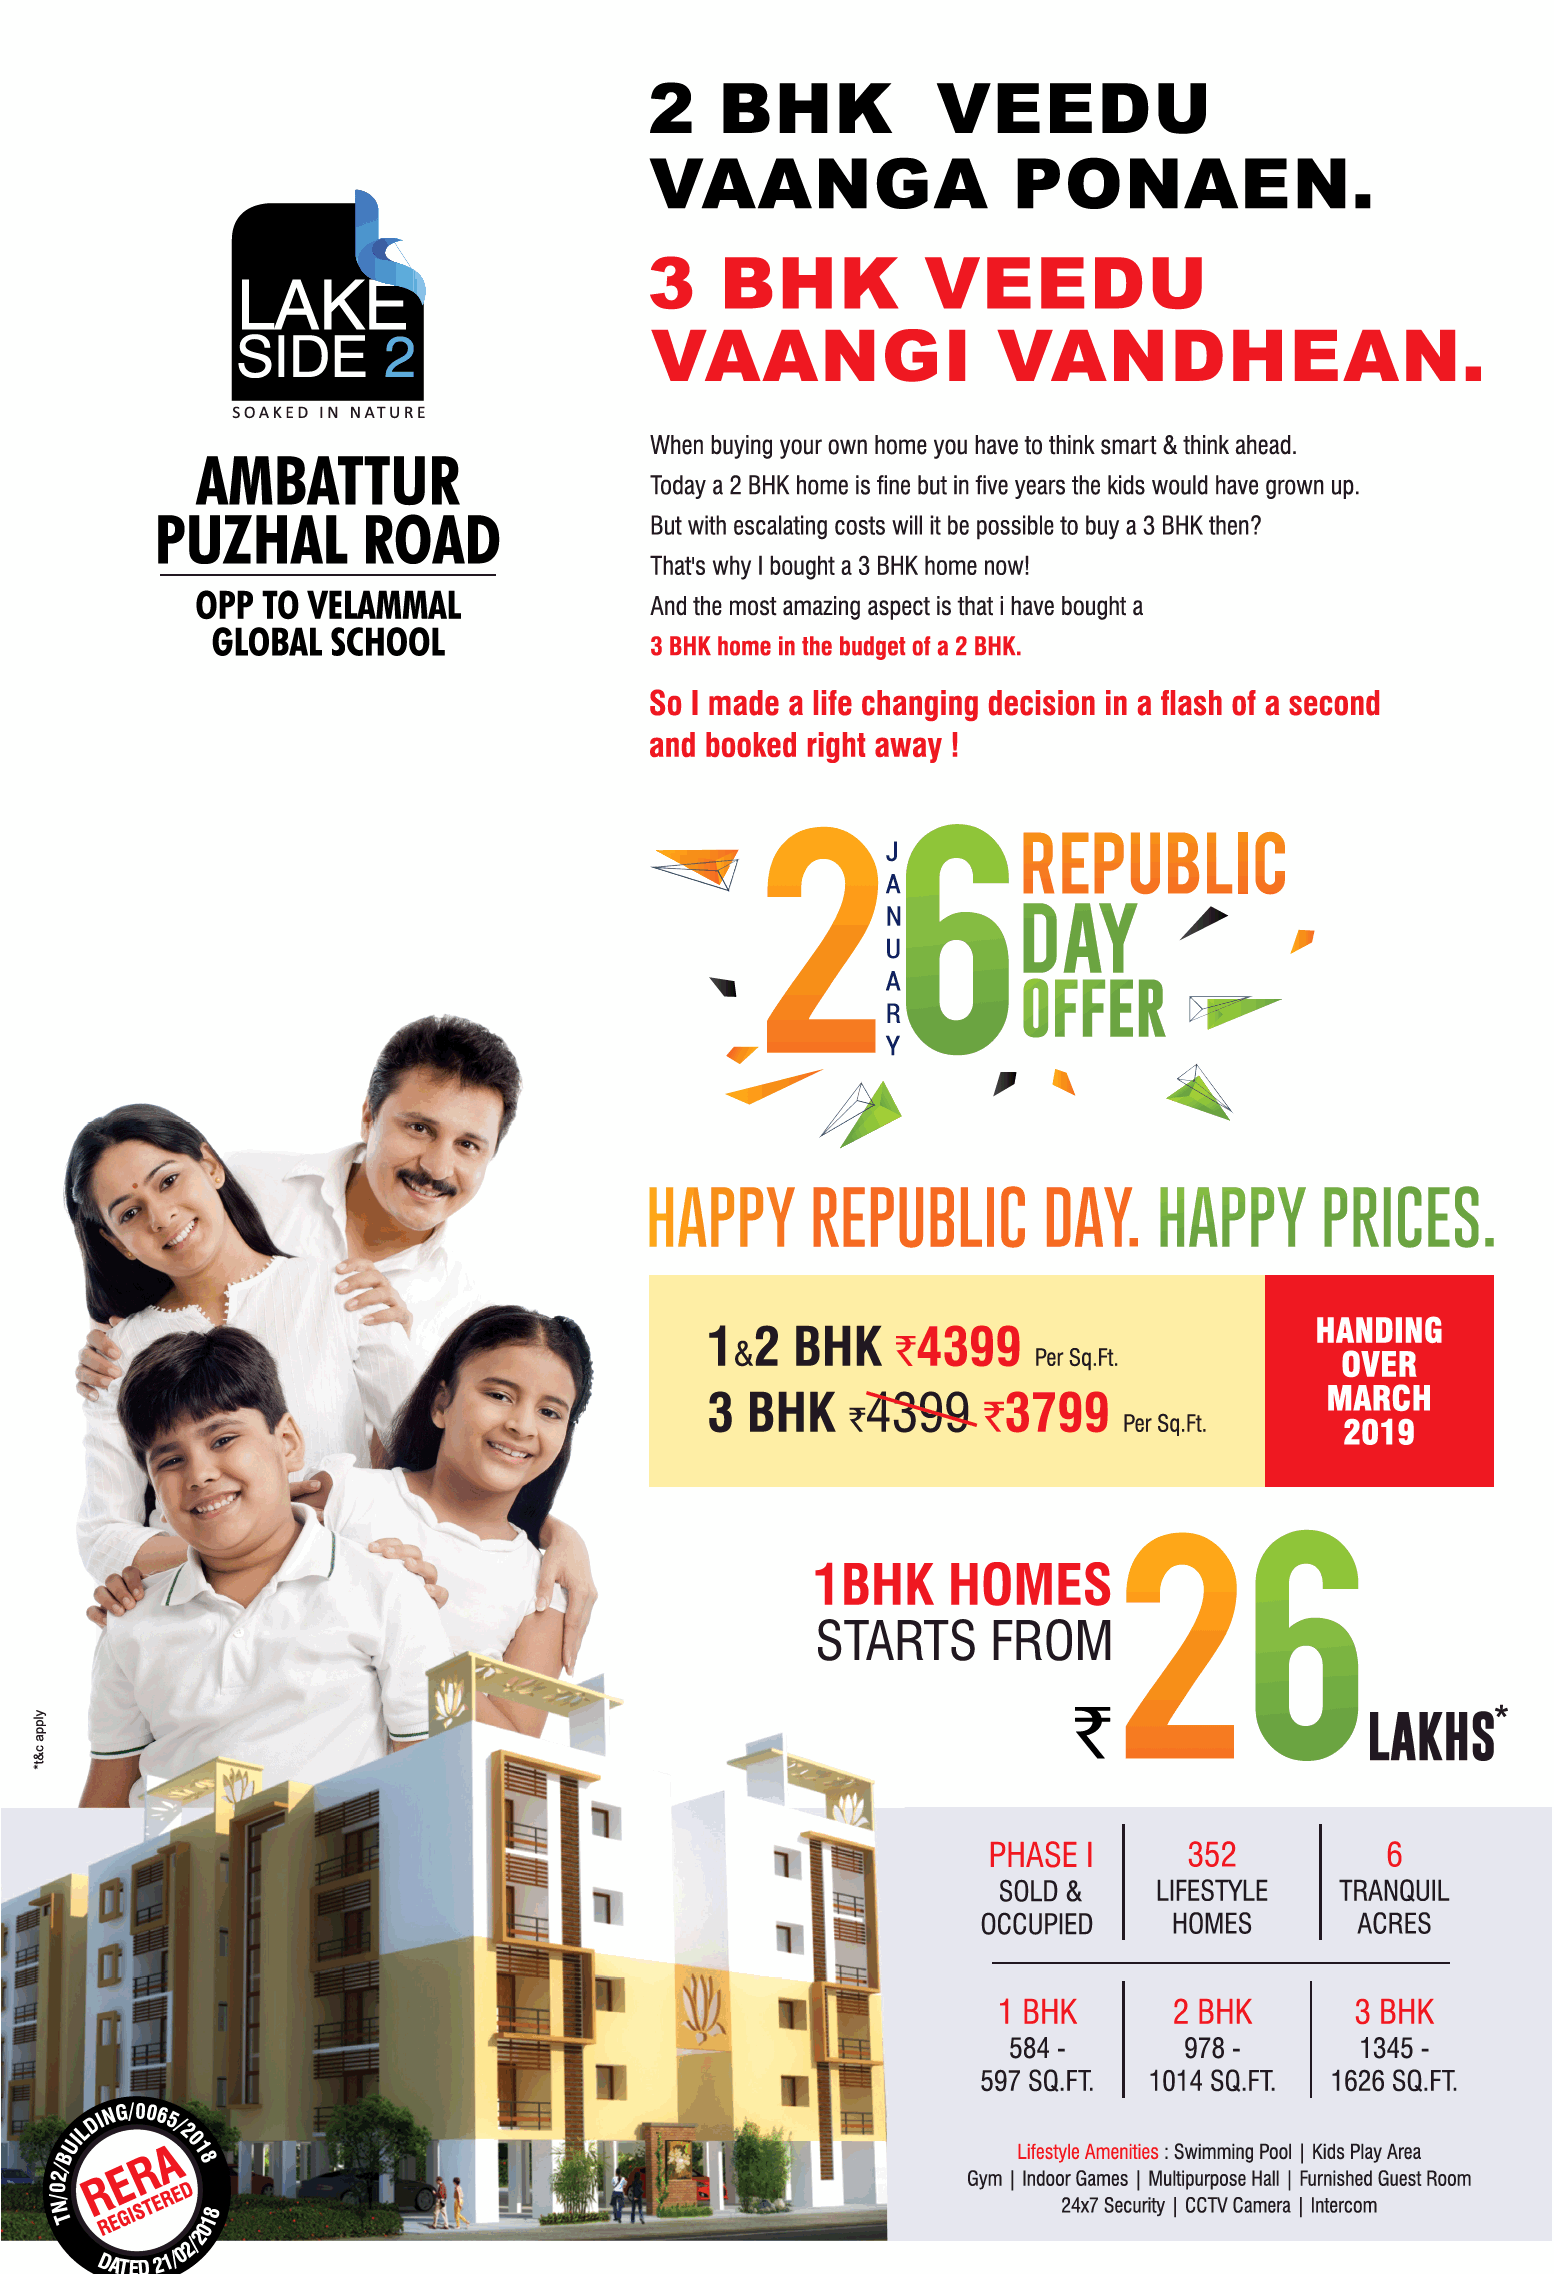 Book 1 bhk homes @ Rs  26 lakhs at Megh Lake Side 2 in